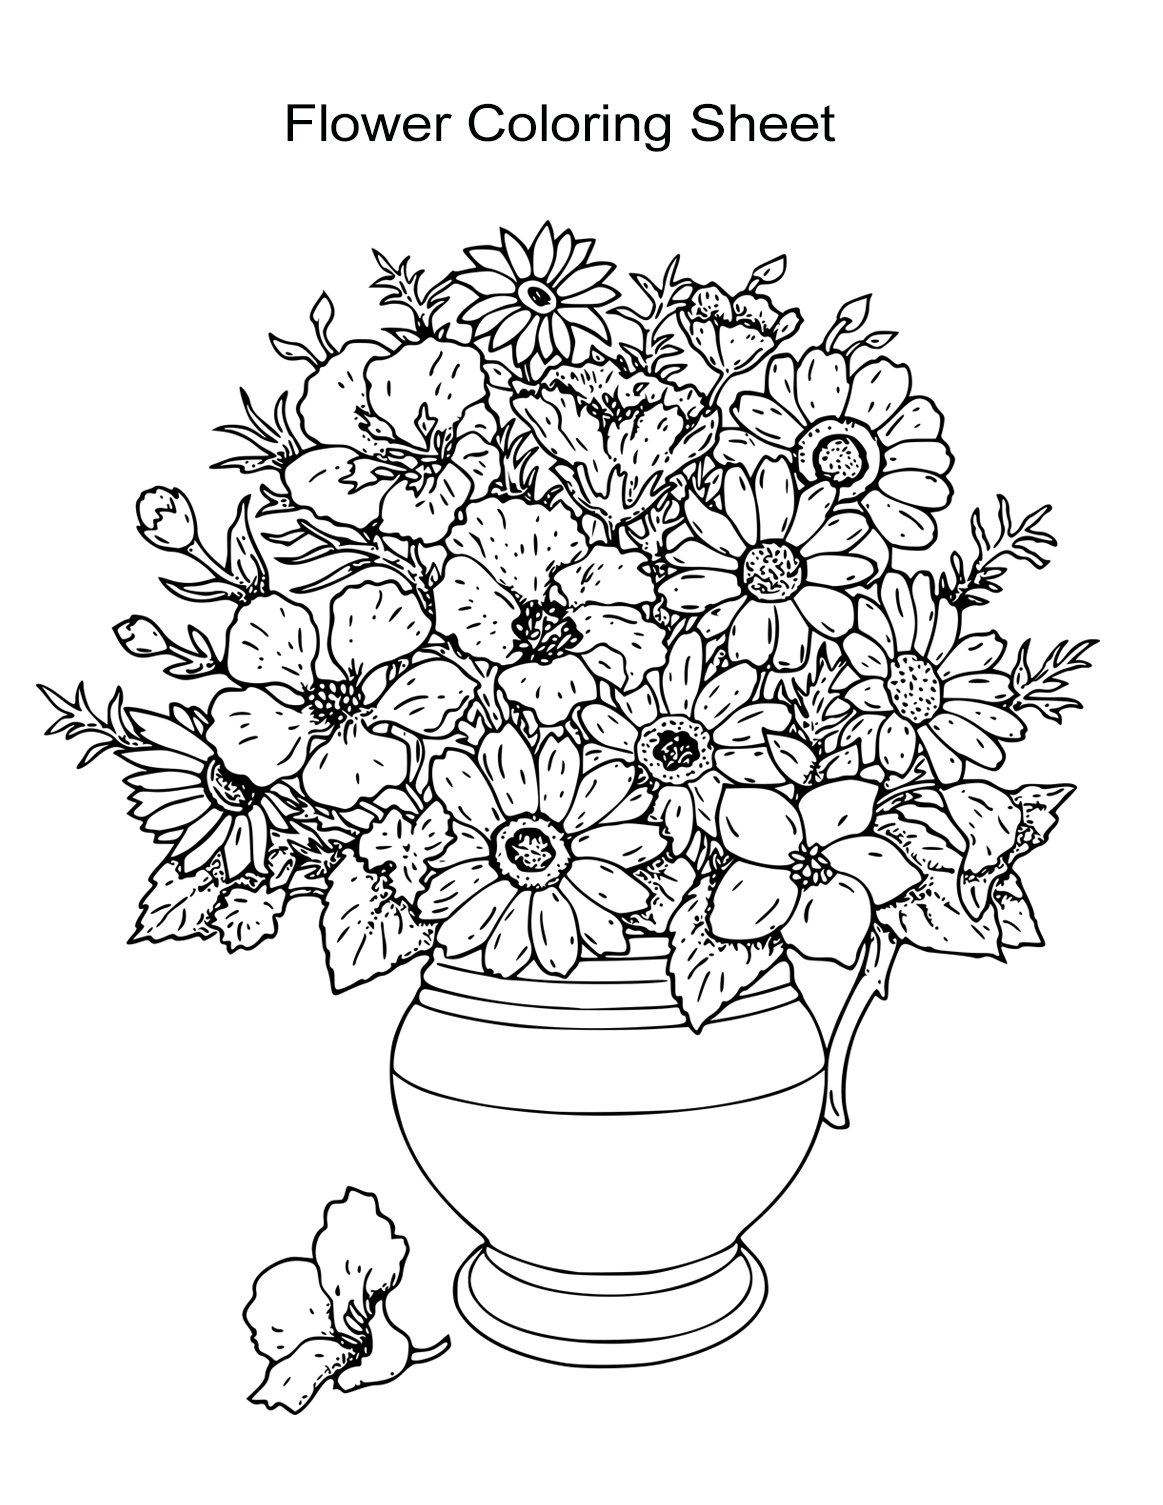 Flower Vase Coloring Sheet